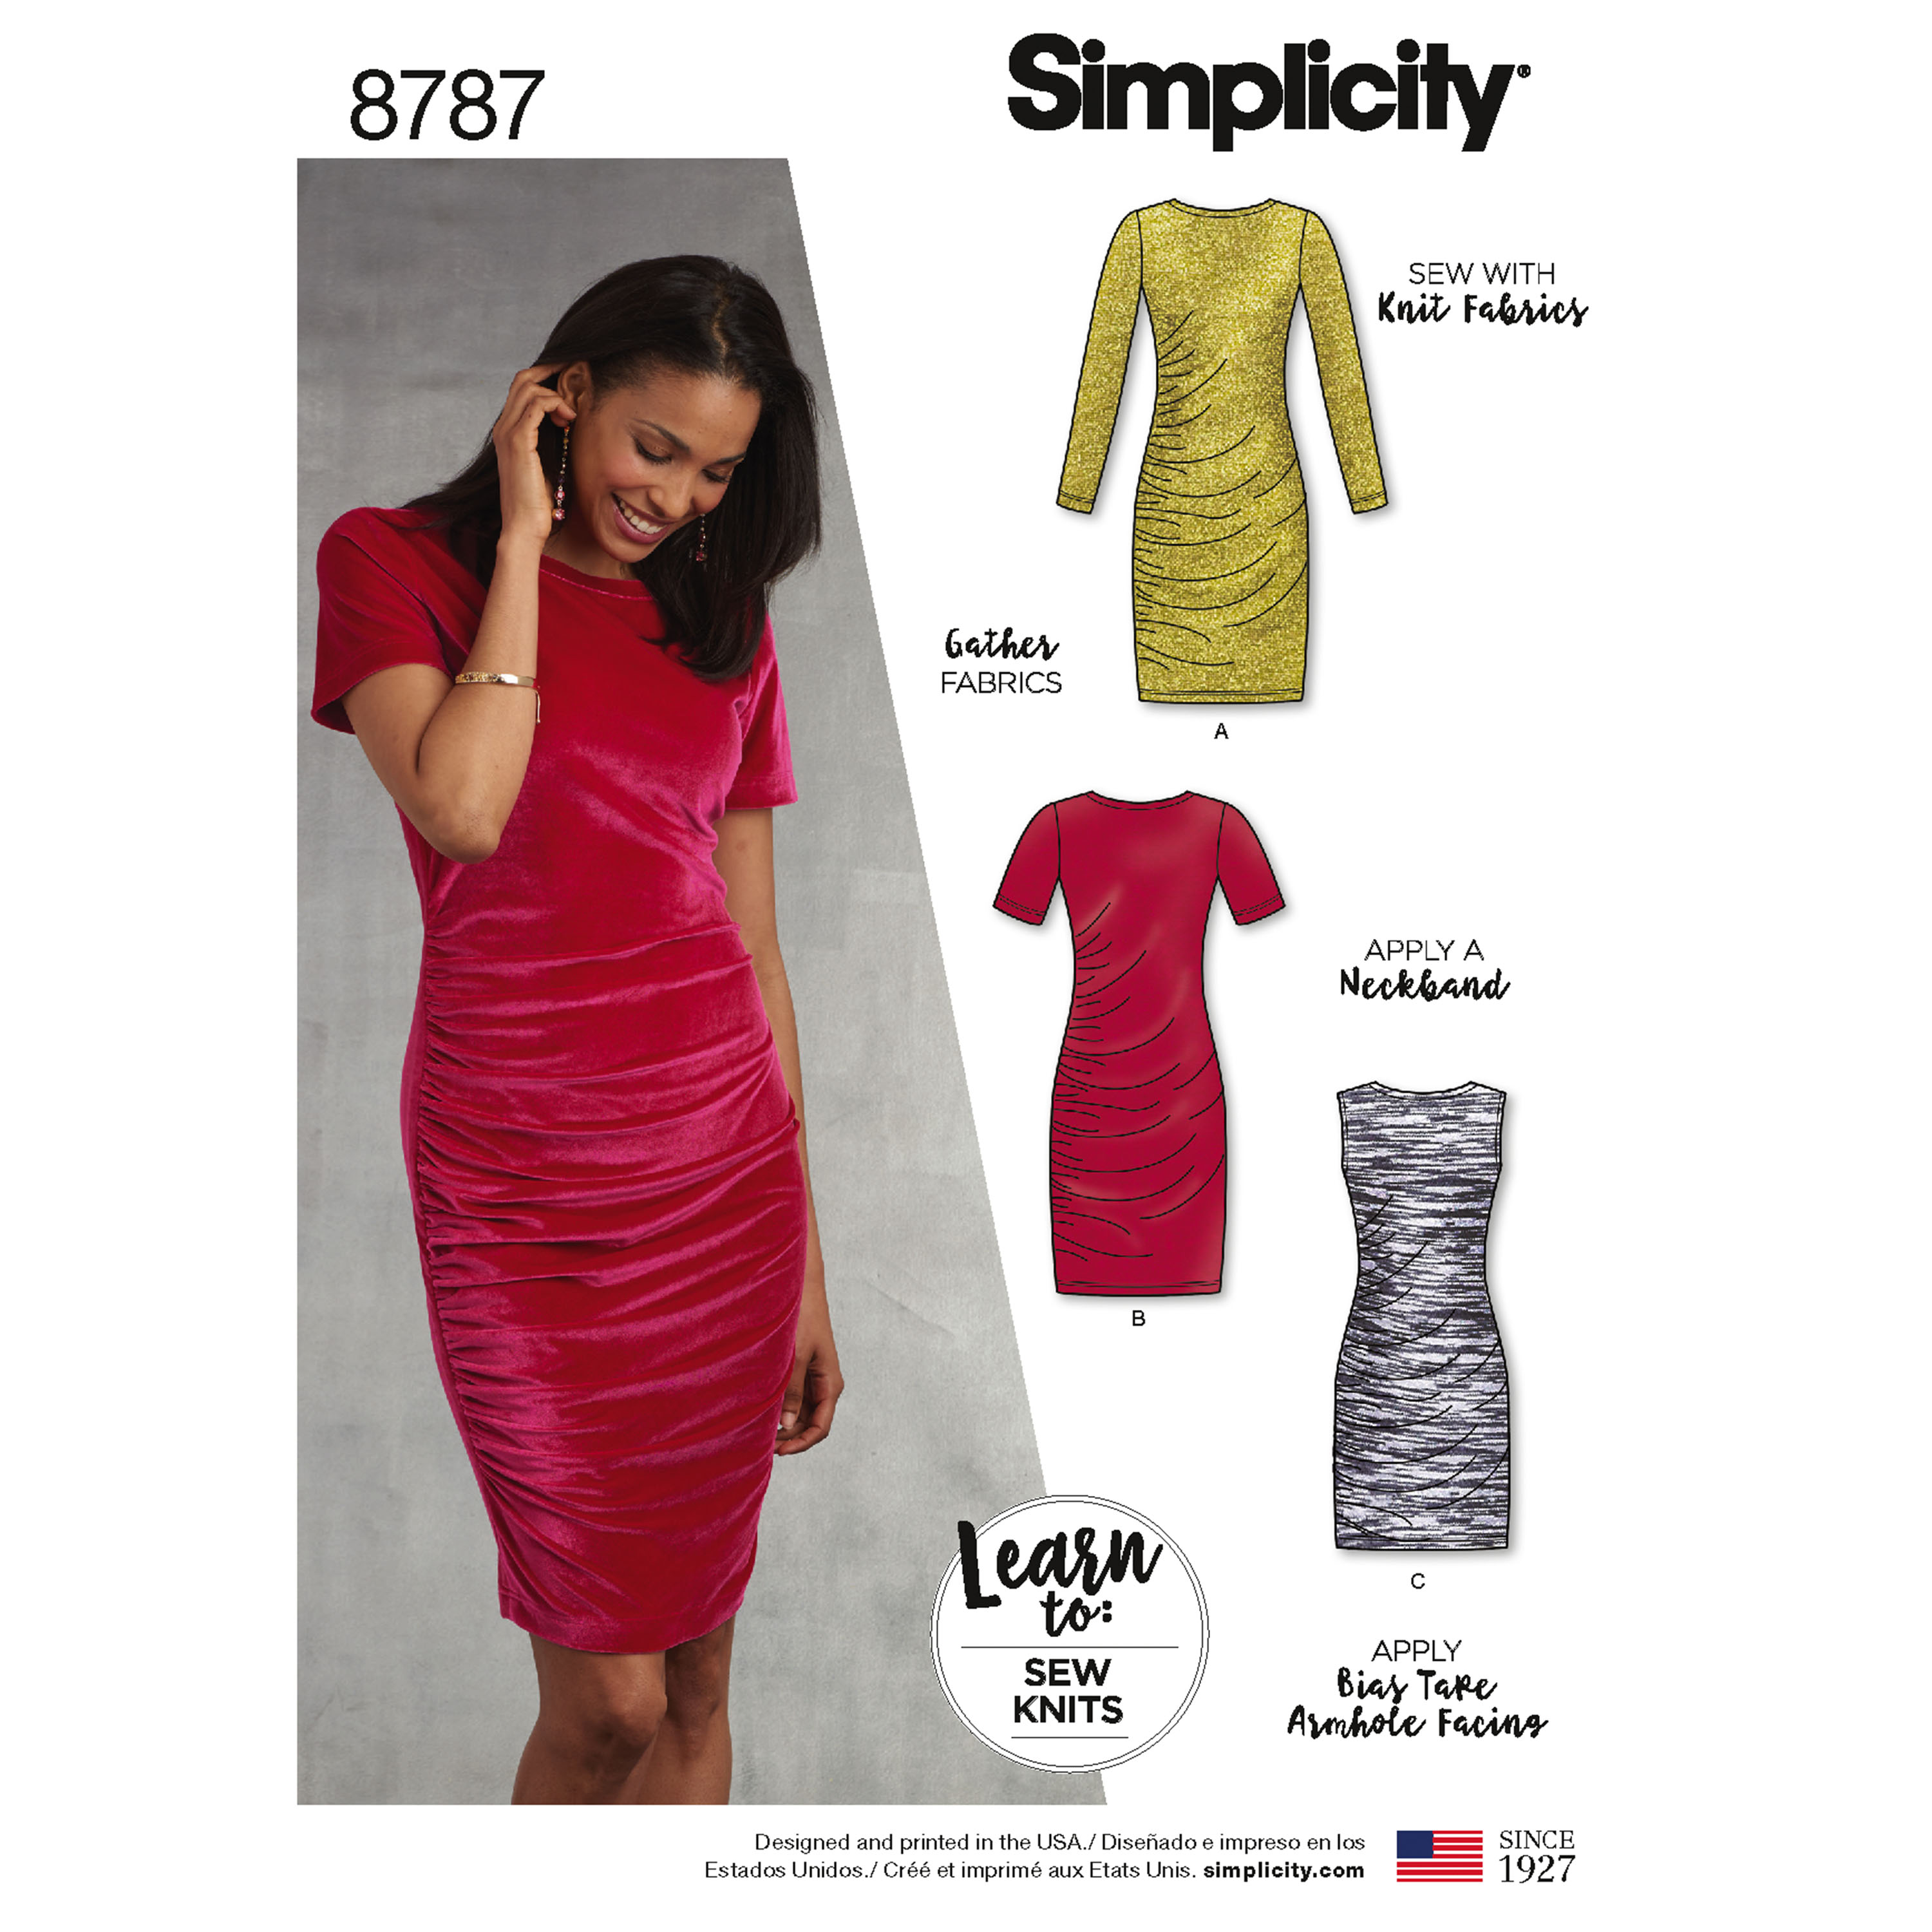 Simplicity 8787 Misses\' Learn-to-Sew Knit Dress